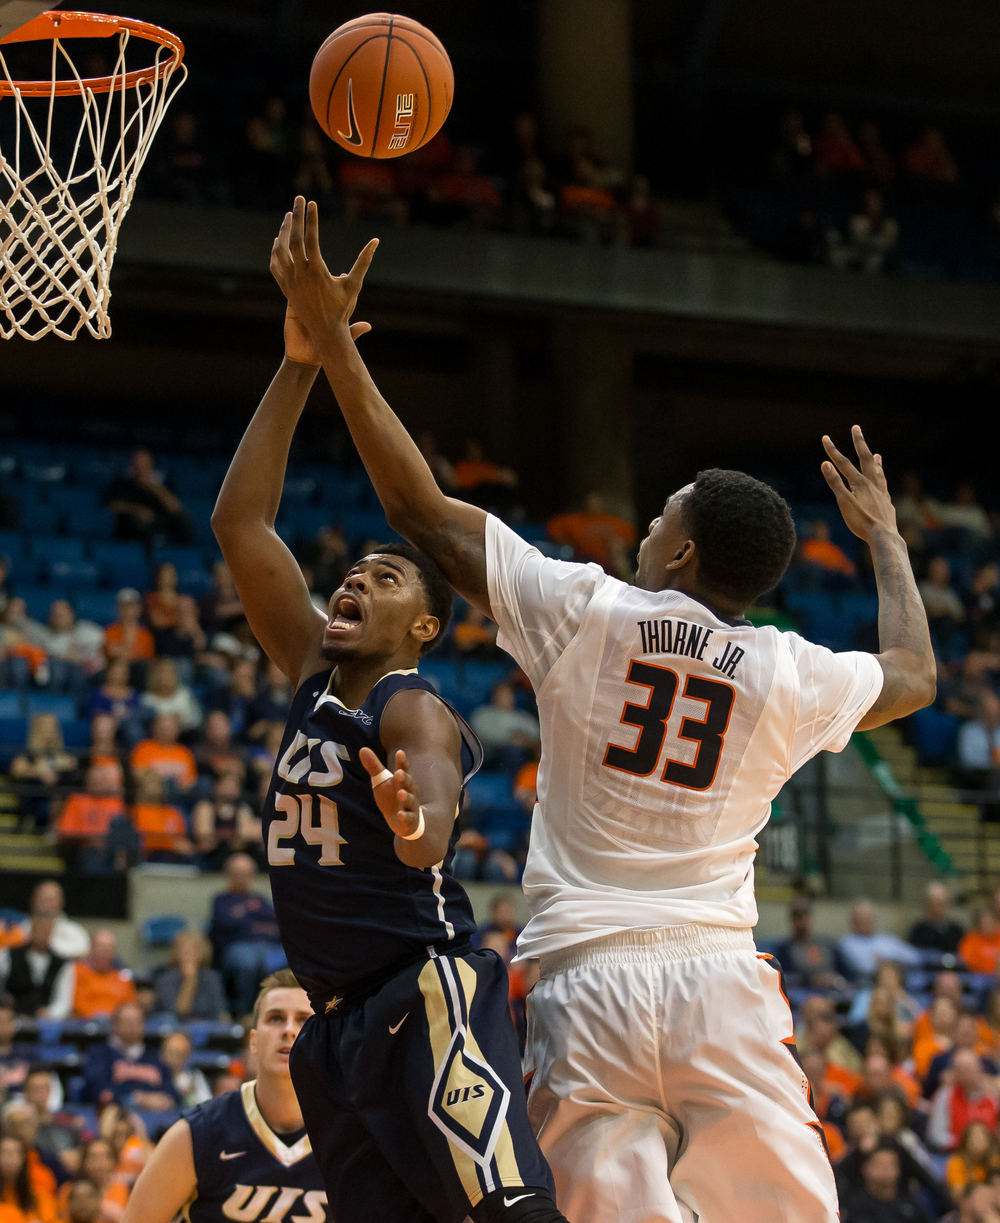 University of Illinois' Mike Thorne (33) fouls University of Illinois Springfield's Jamall Millison (24) going for a rebound in the first half during an exhibition game at the Prairie Capital Convention Center, Sunday, Nov. 8, 2015, in Springfield, Ill. Justin L. Fowler/The State Journal-Register